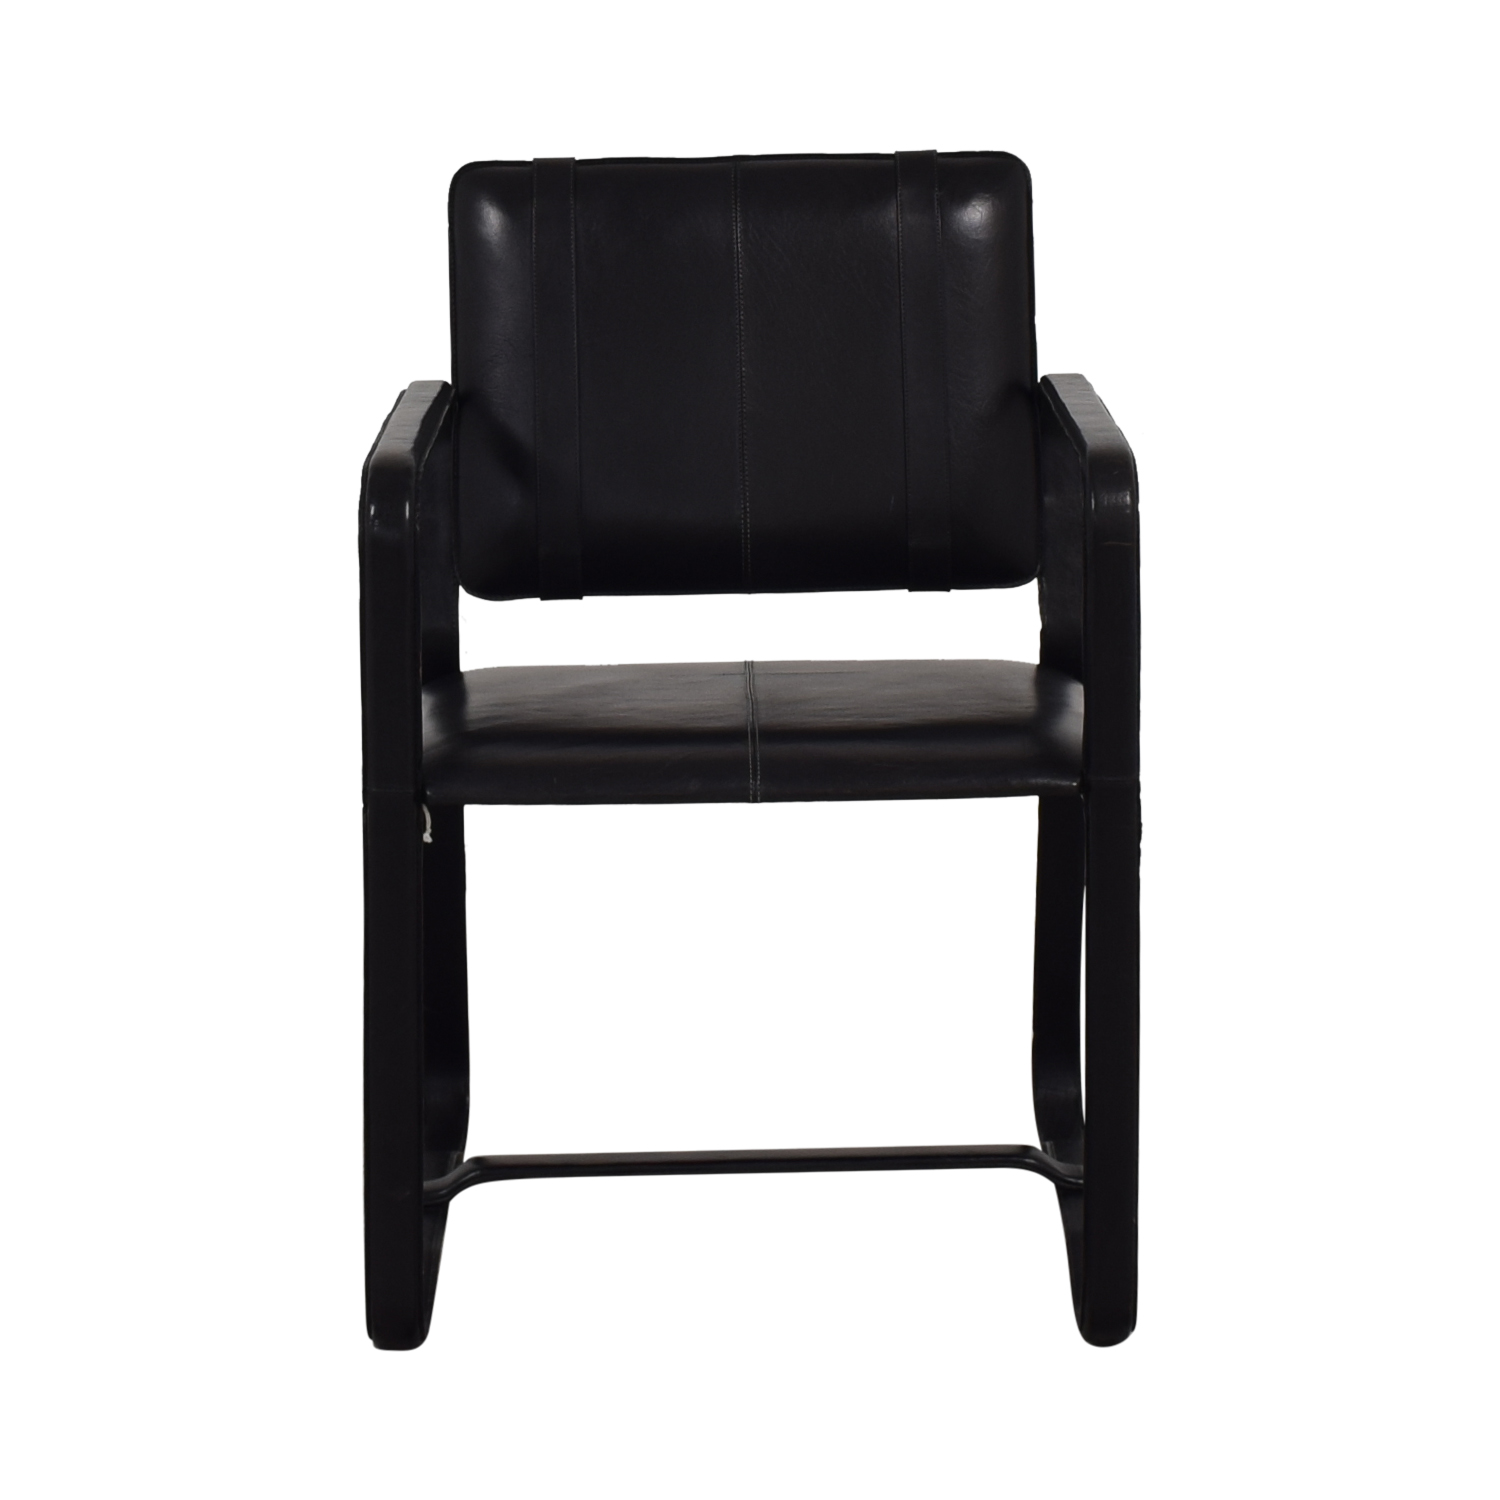 Restoration Hardware Lounge Chair / Chairs